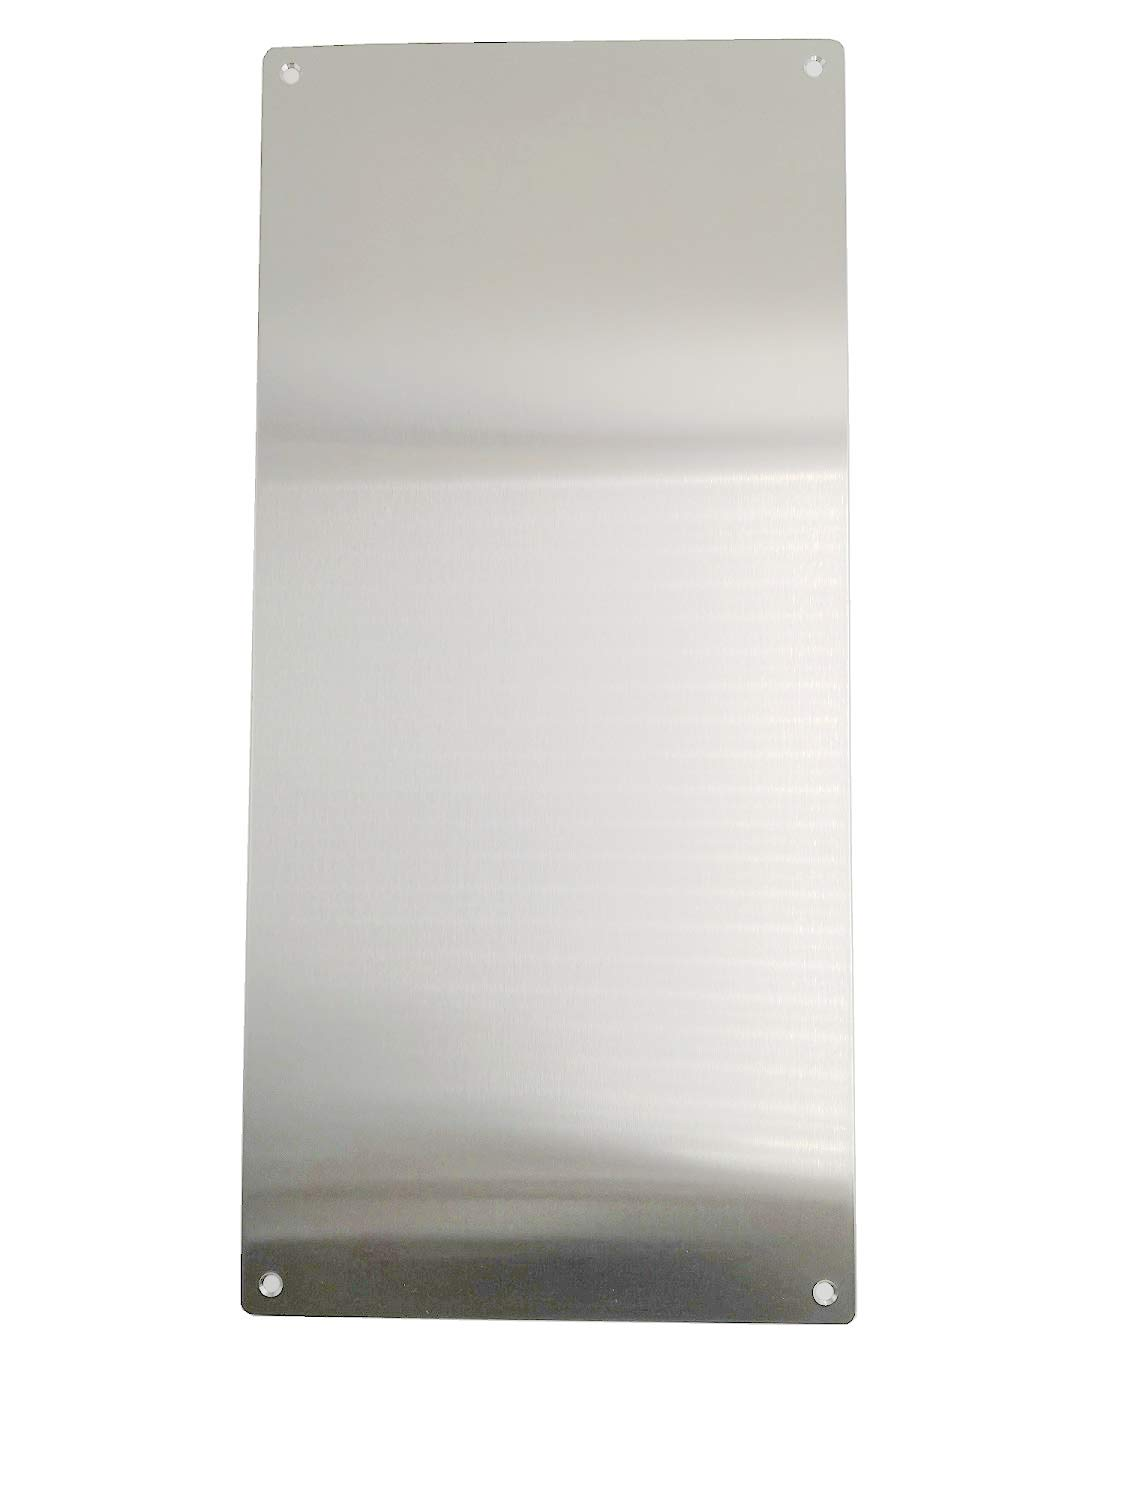 Promotion! VRSS Pack of 2 Satin Finish 304 Stainless Steel Kick Plate 200mm Height x 430mm Width 1.2mm Thick, 2 Pack